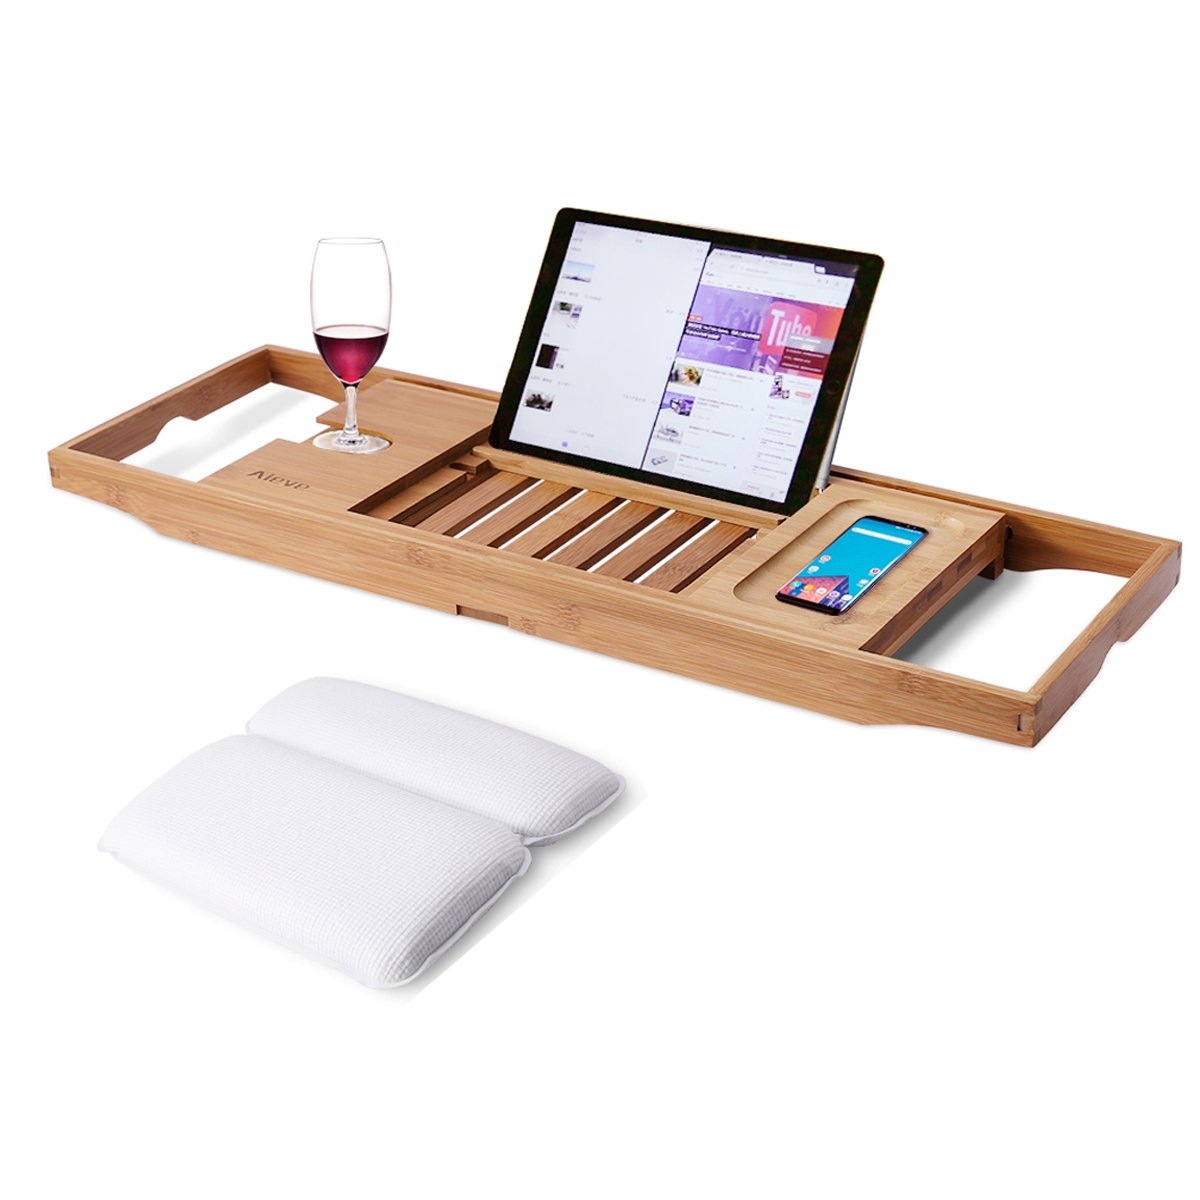 Bathtub Tray and Bath Pillow,Bamboo Bathtub Caddy Tray Bath Tray for Tub with Wine Glass Holder and Book Holder and Spa Bath Pillow with Suction Cups for Head and Neck Support by Aieve (Image #1)